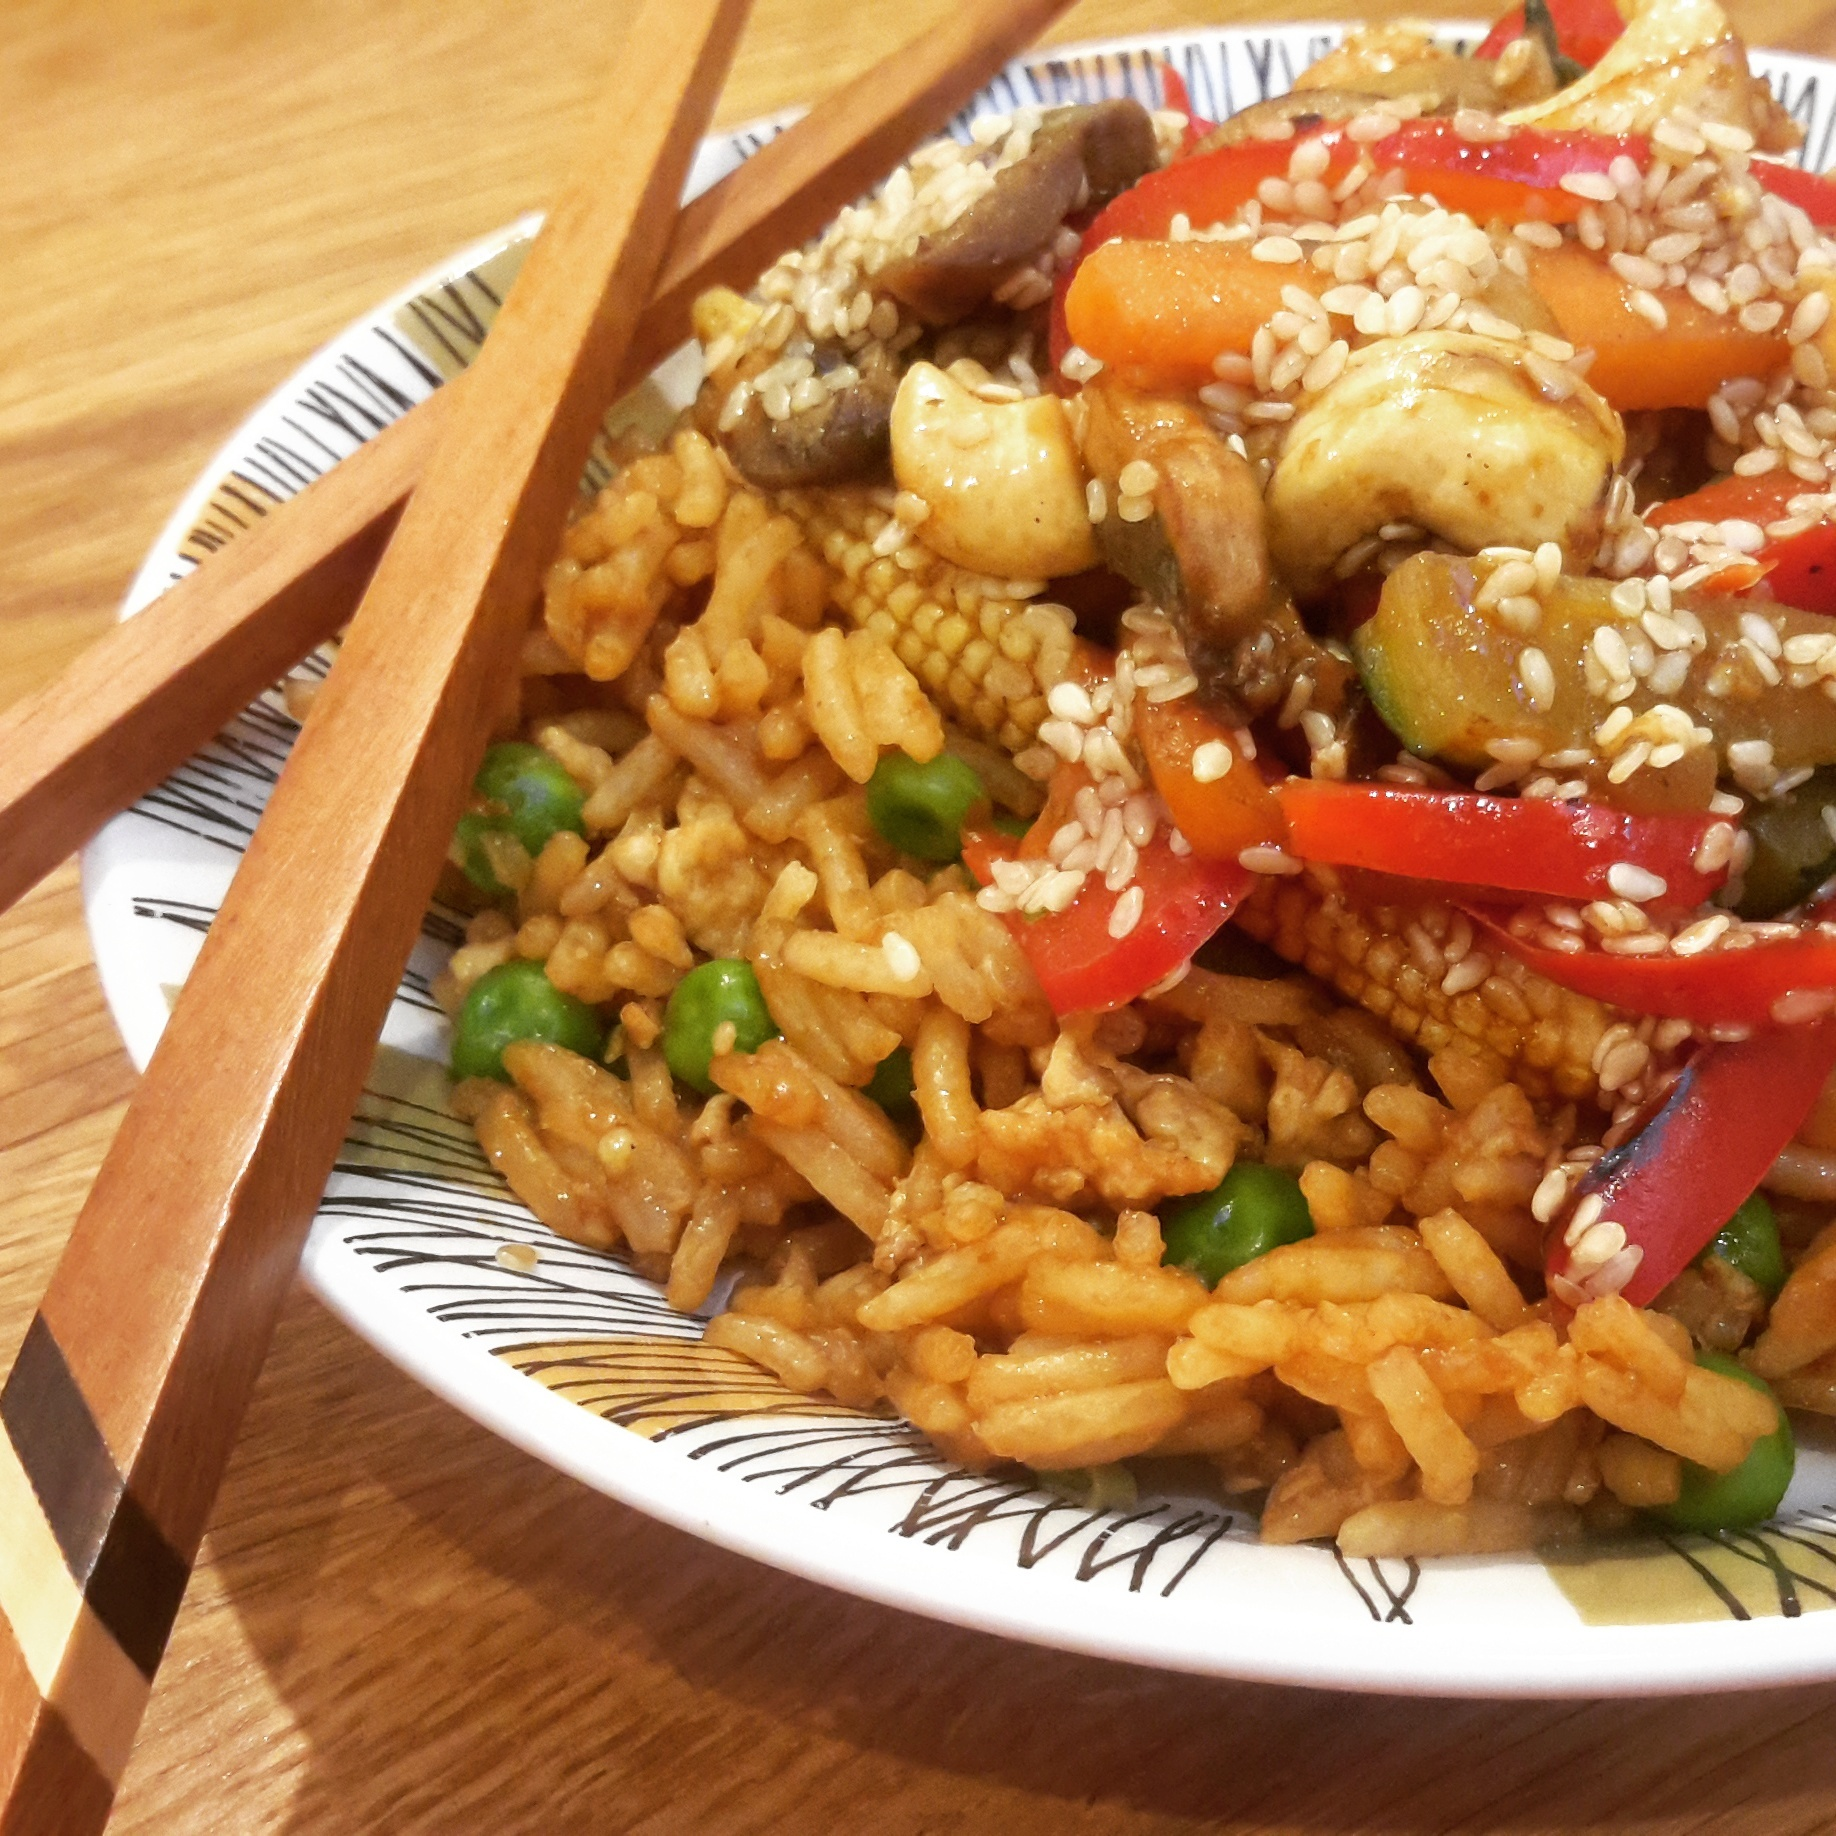 Cashew & sesame stir fry with egg fried rice